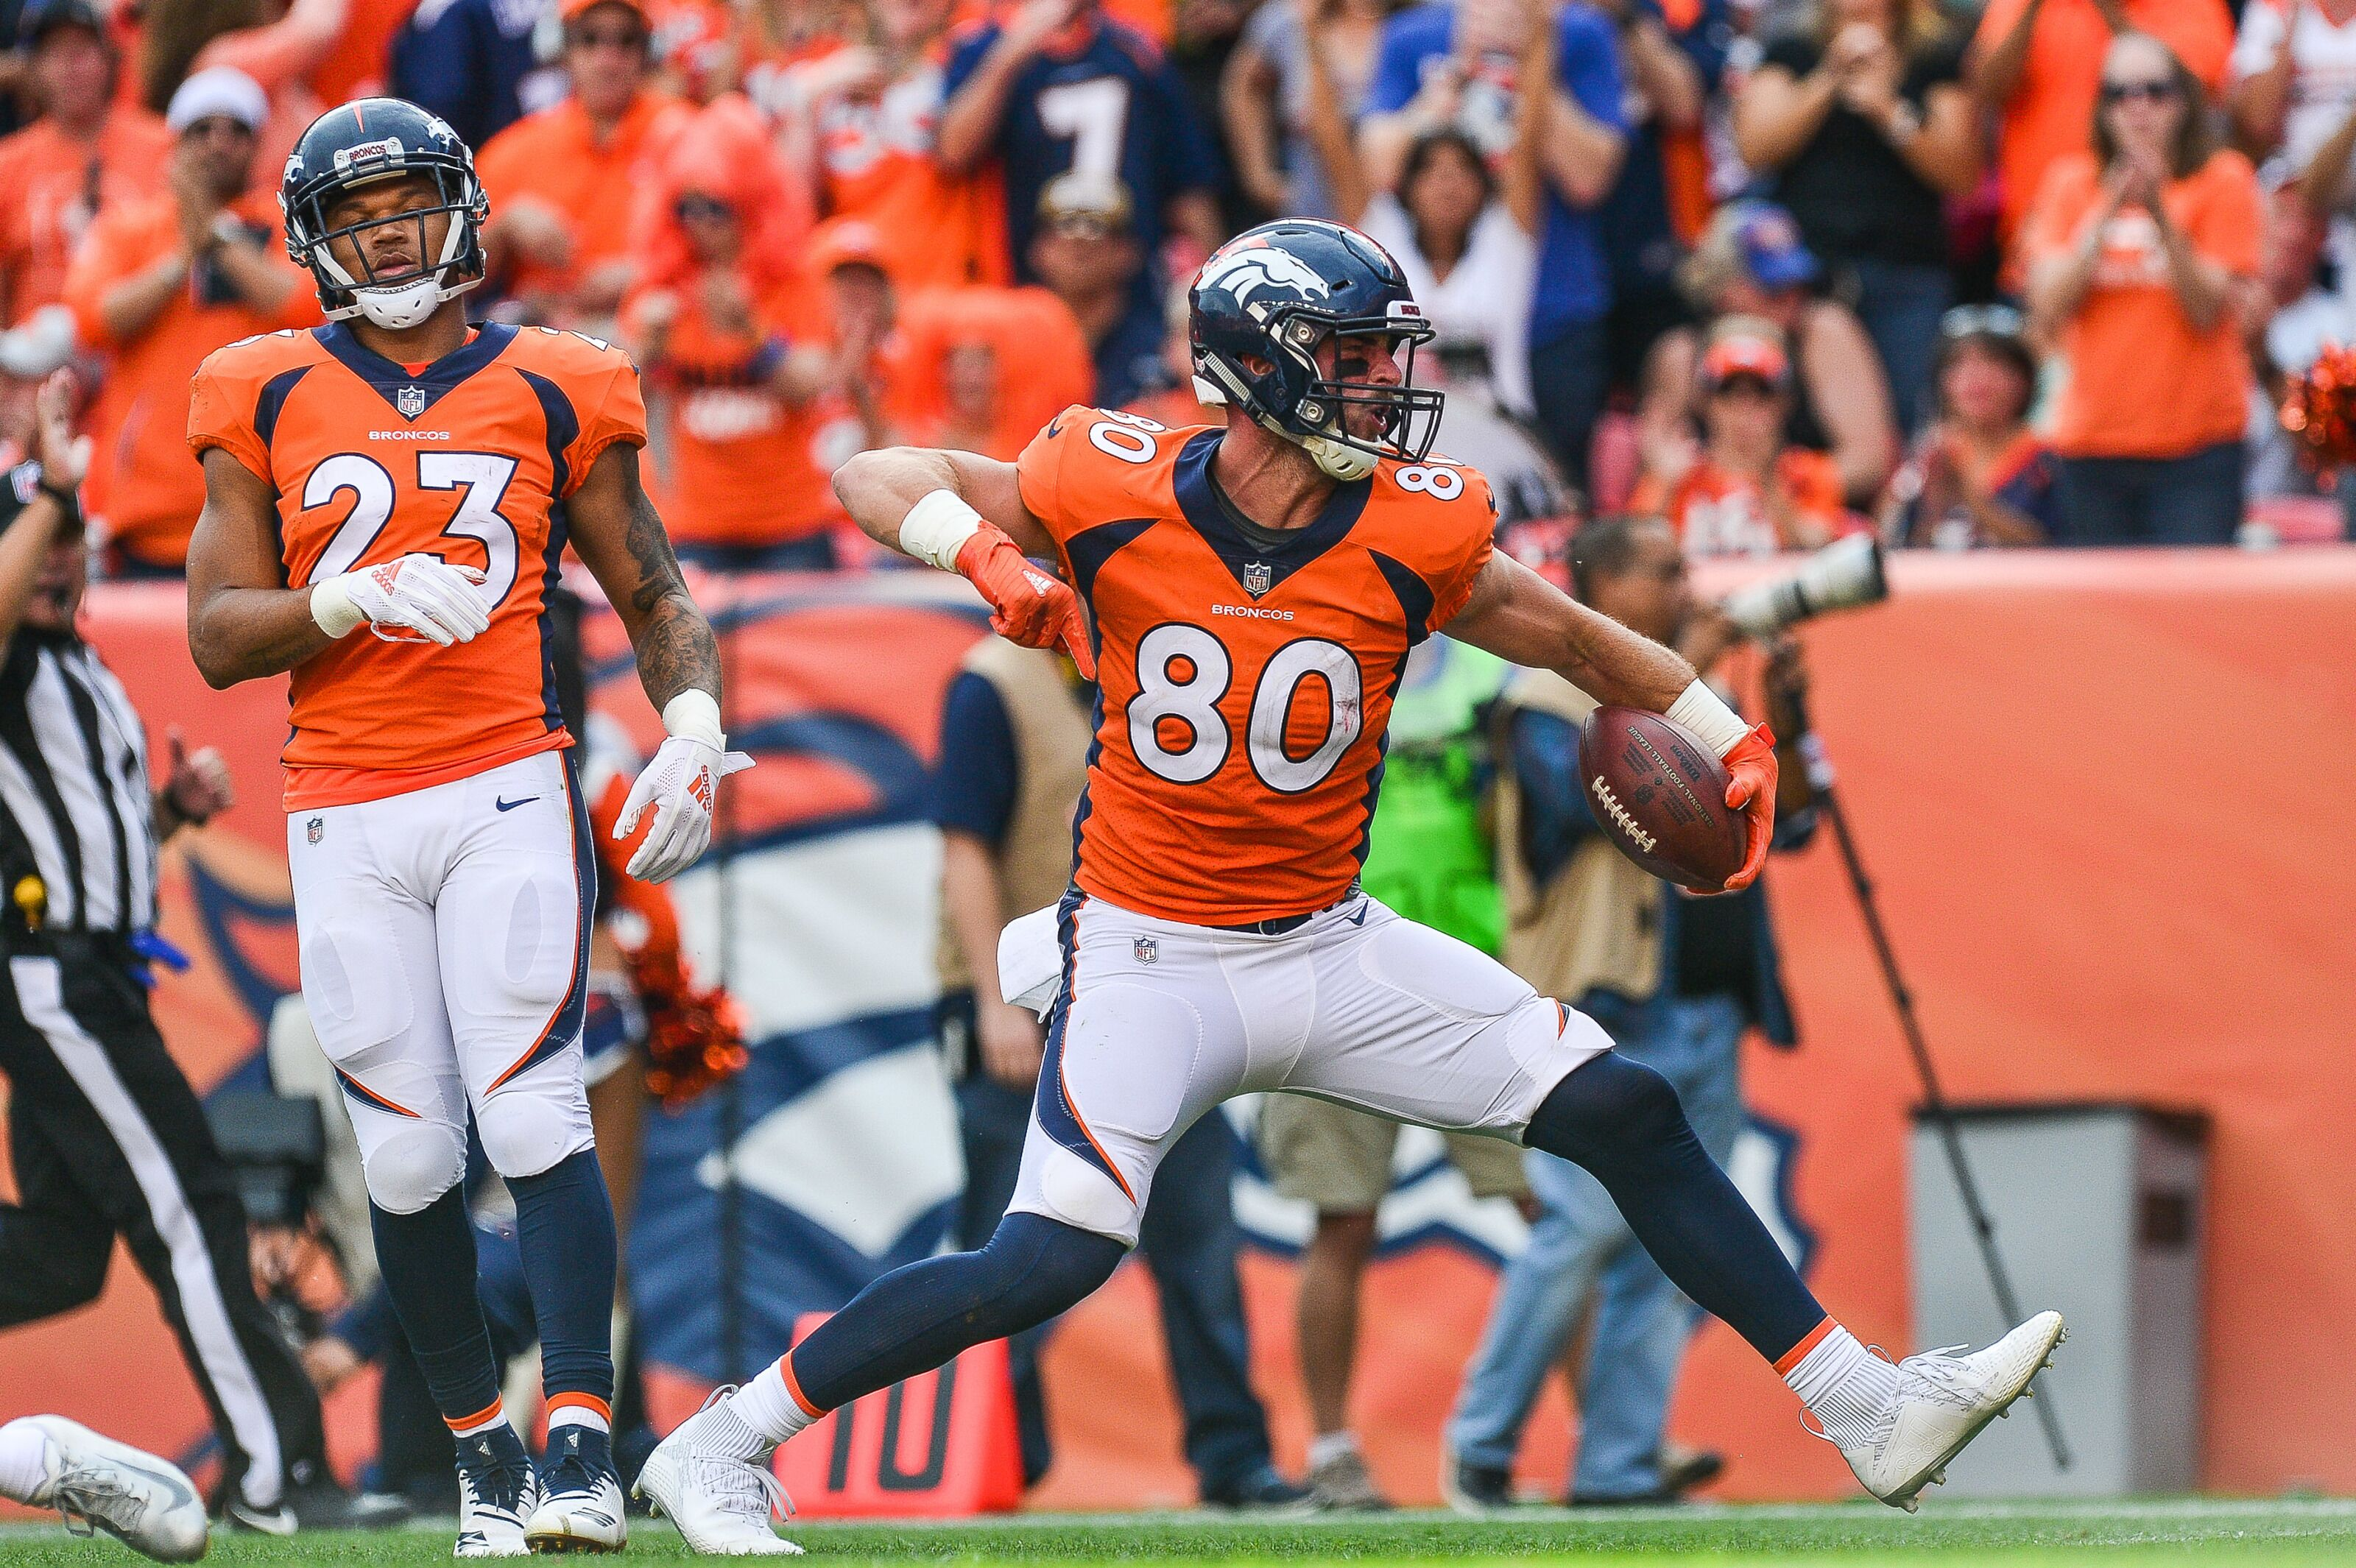 promo code 456e5 dbd1d Is Jake Butt the Denver Broncos' best tight end when healthy?